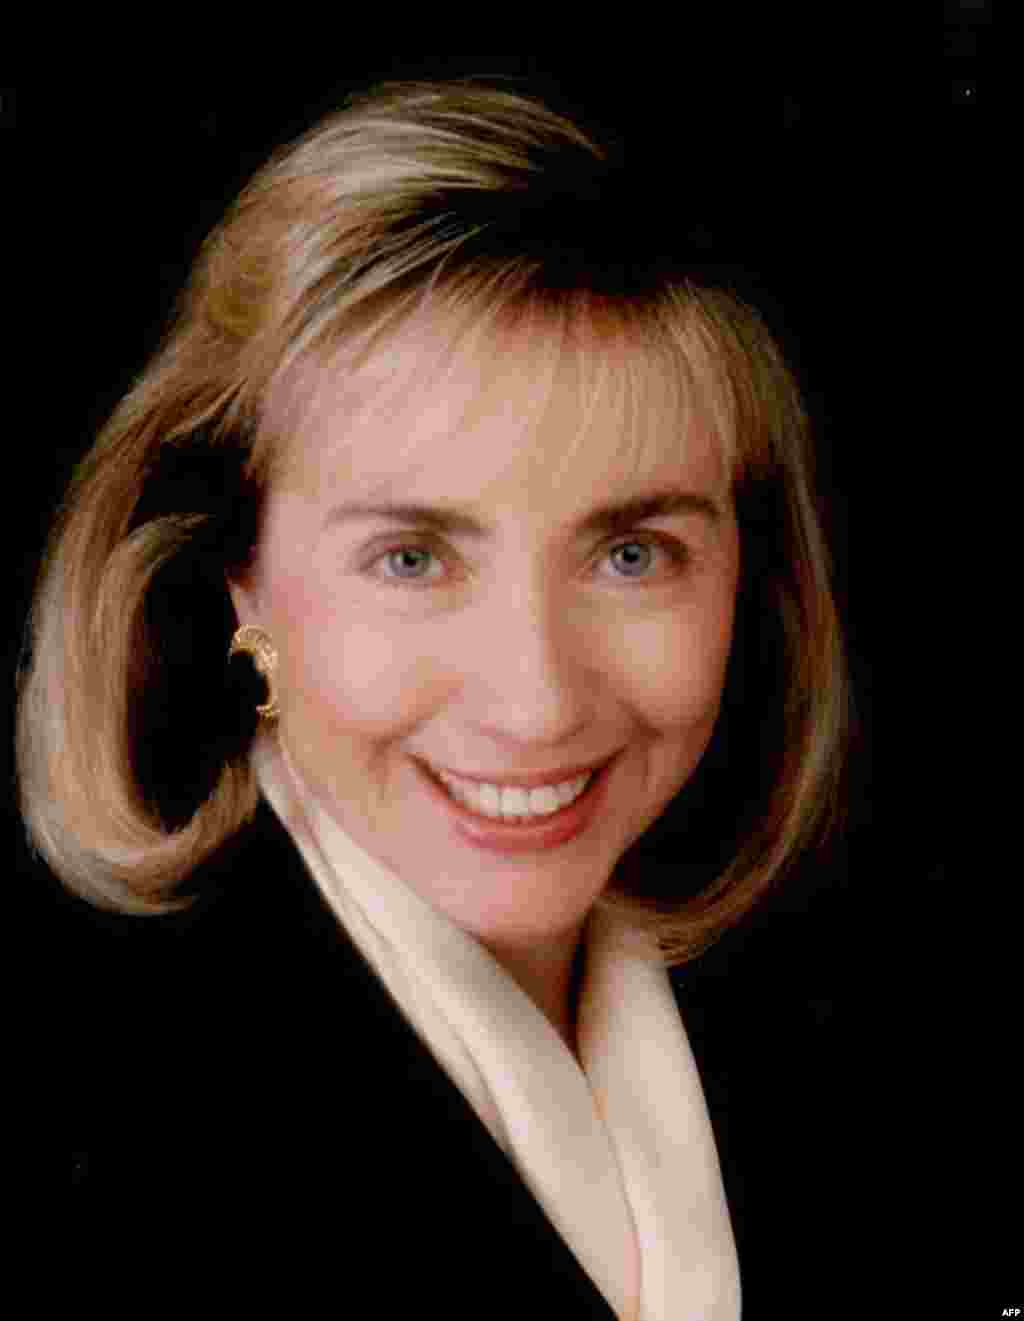 An official White House photo shows Hillary Clinton in her new role as first lady on January 21, 1993.